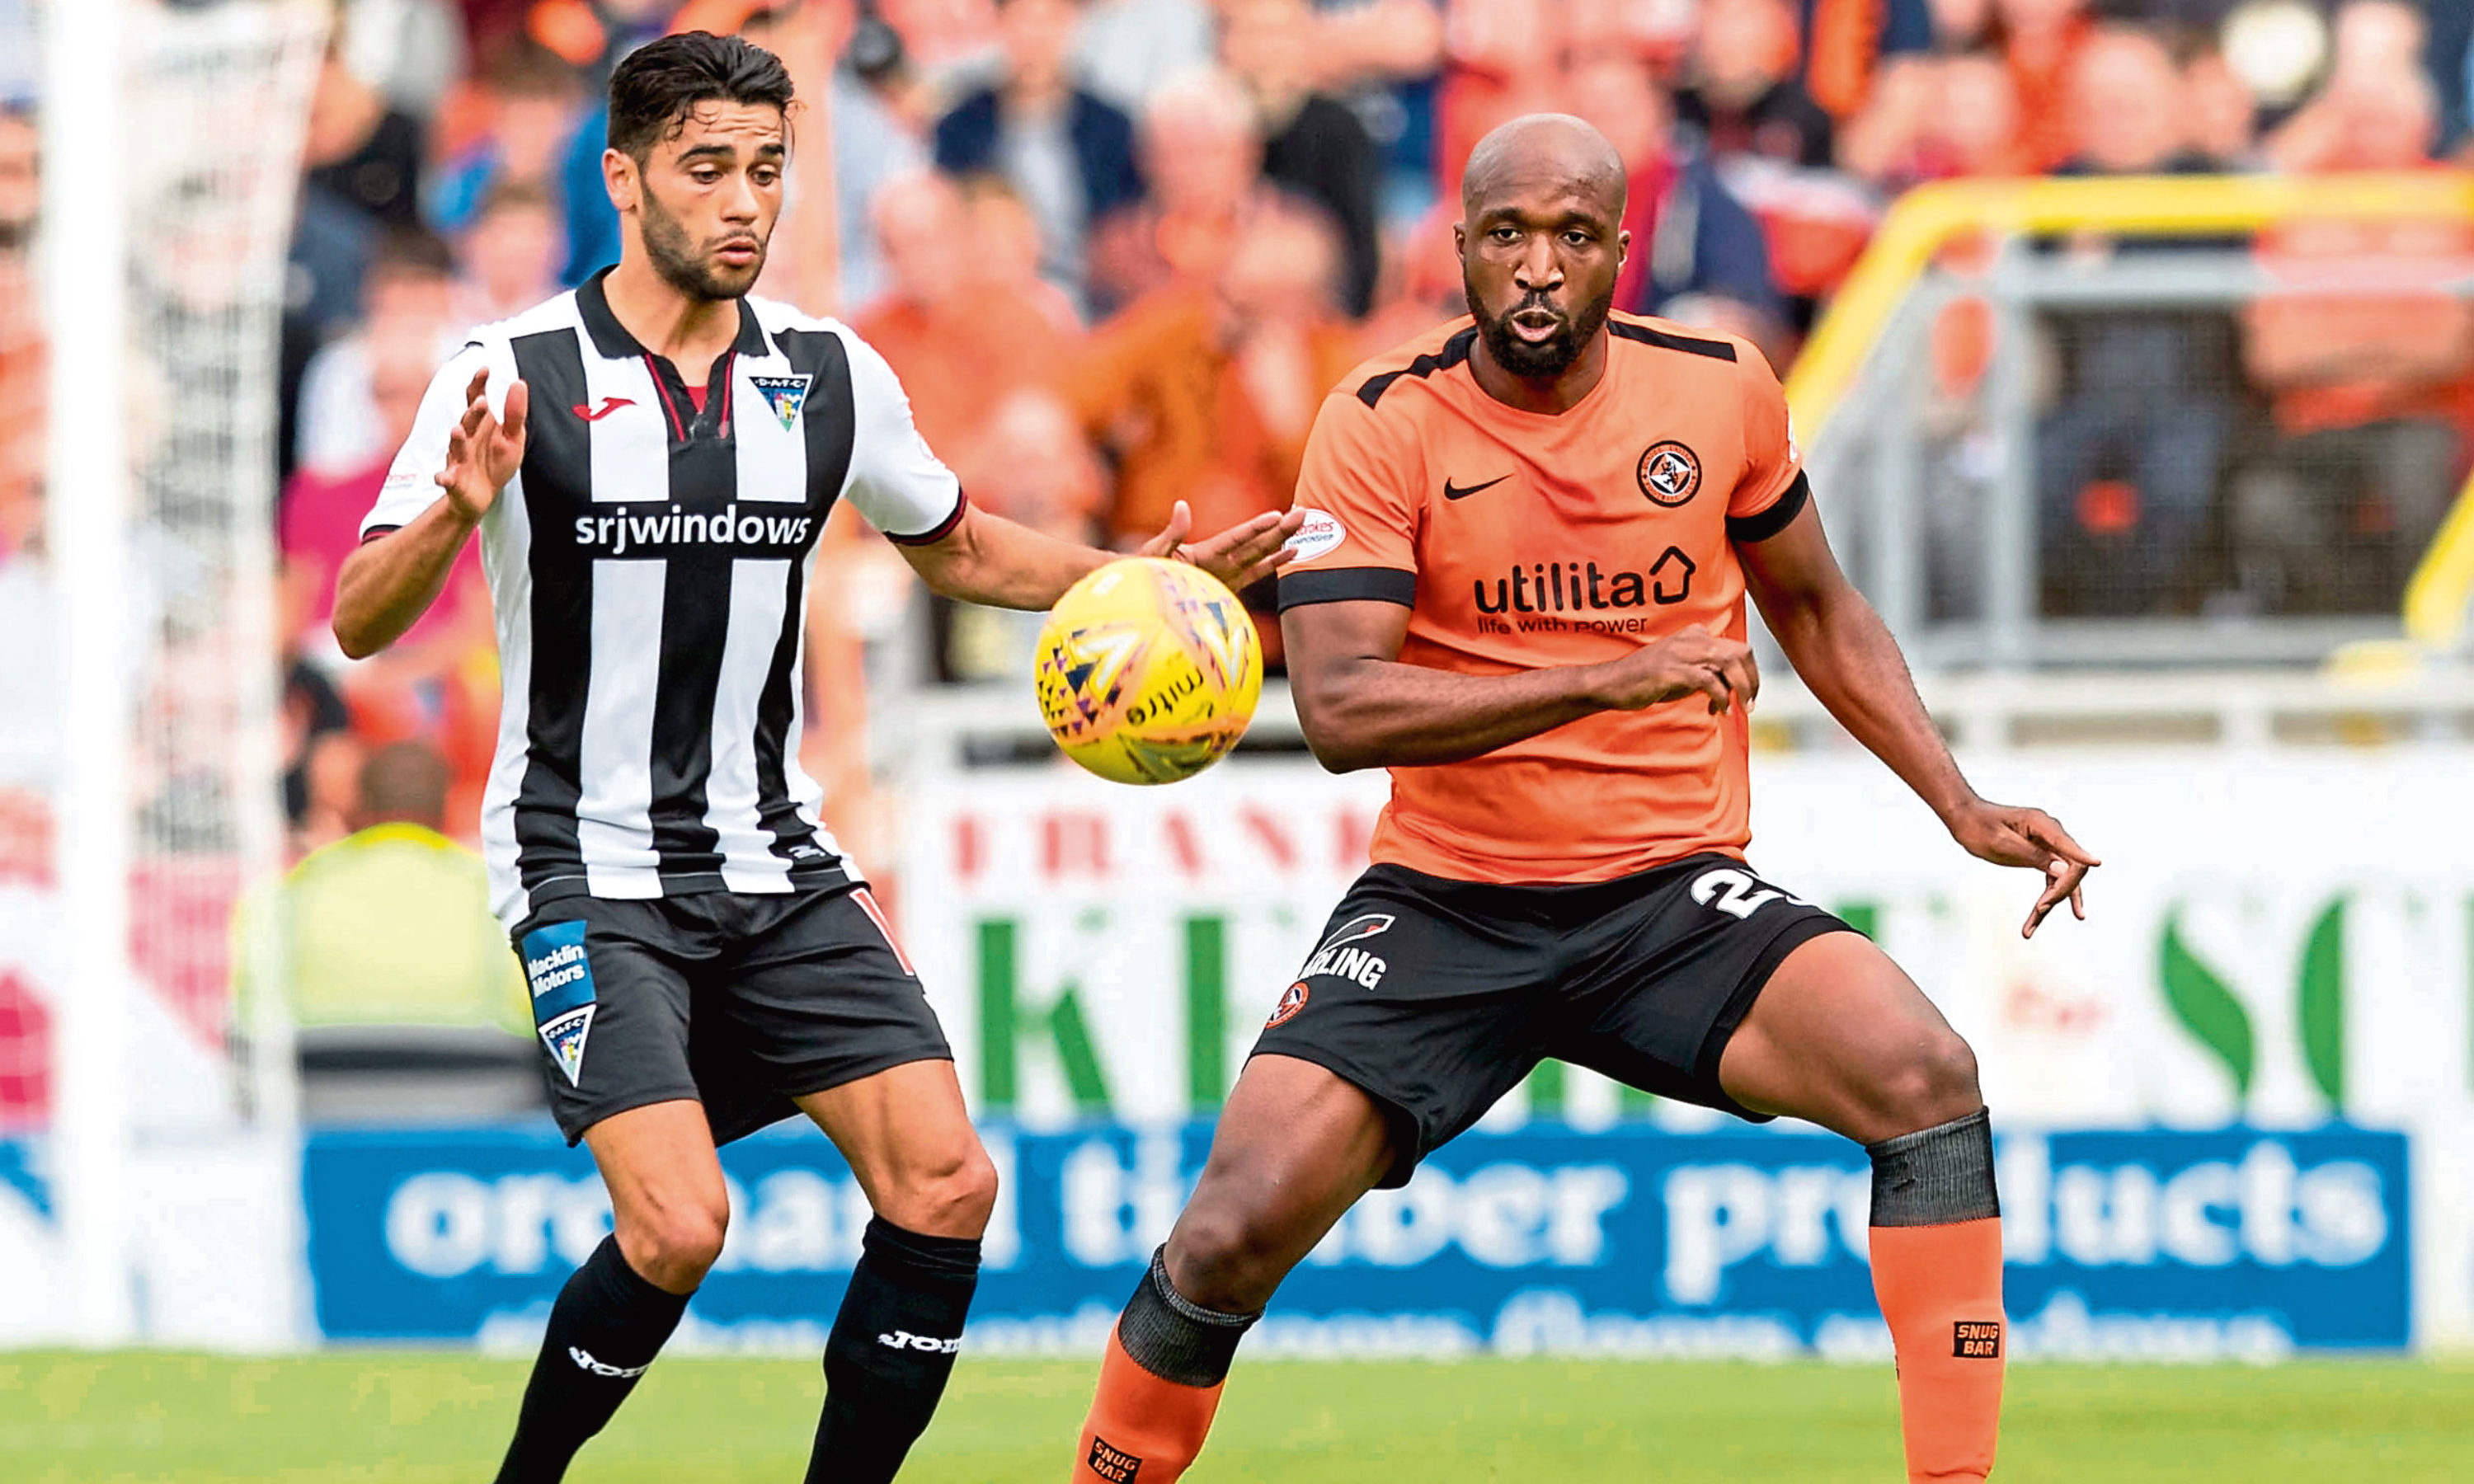 Dunfermline's Faissal El Bakhtaoui (left) in action against Dundee United's William Edjenguele